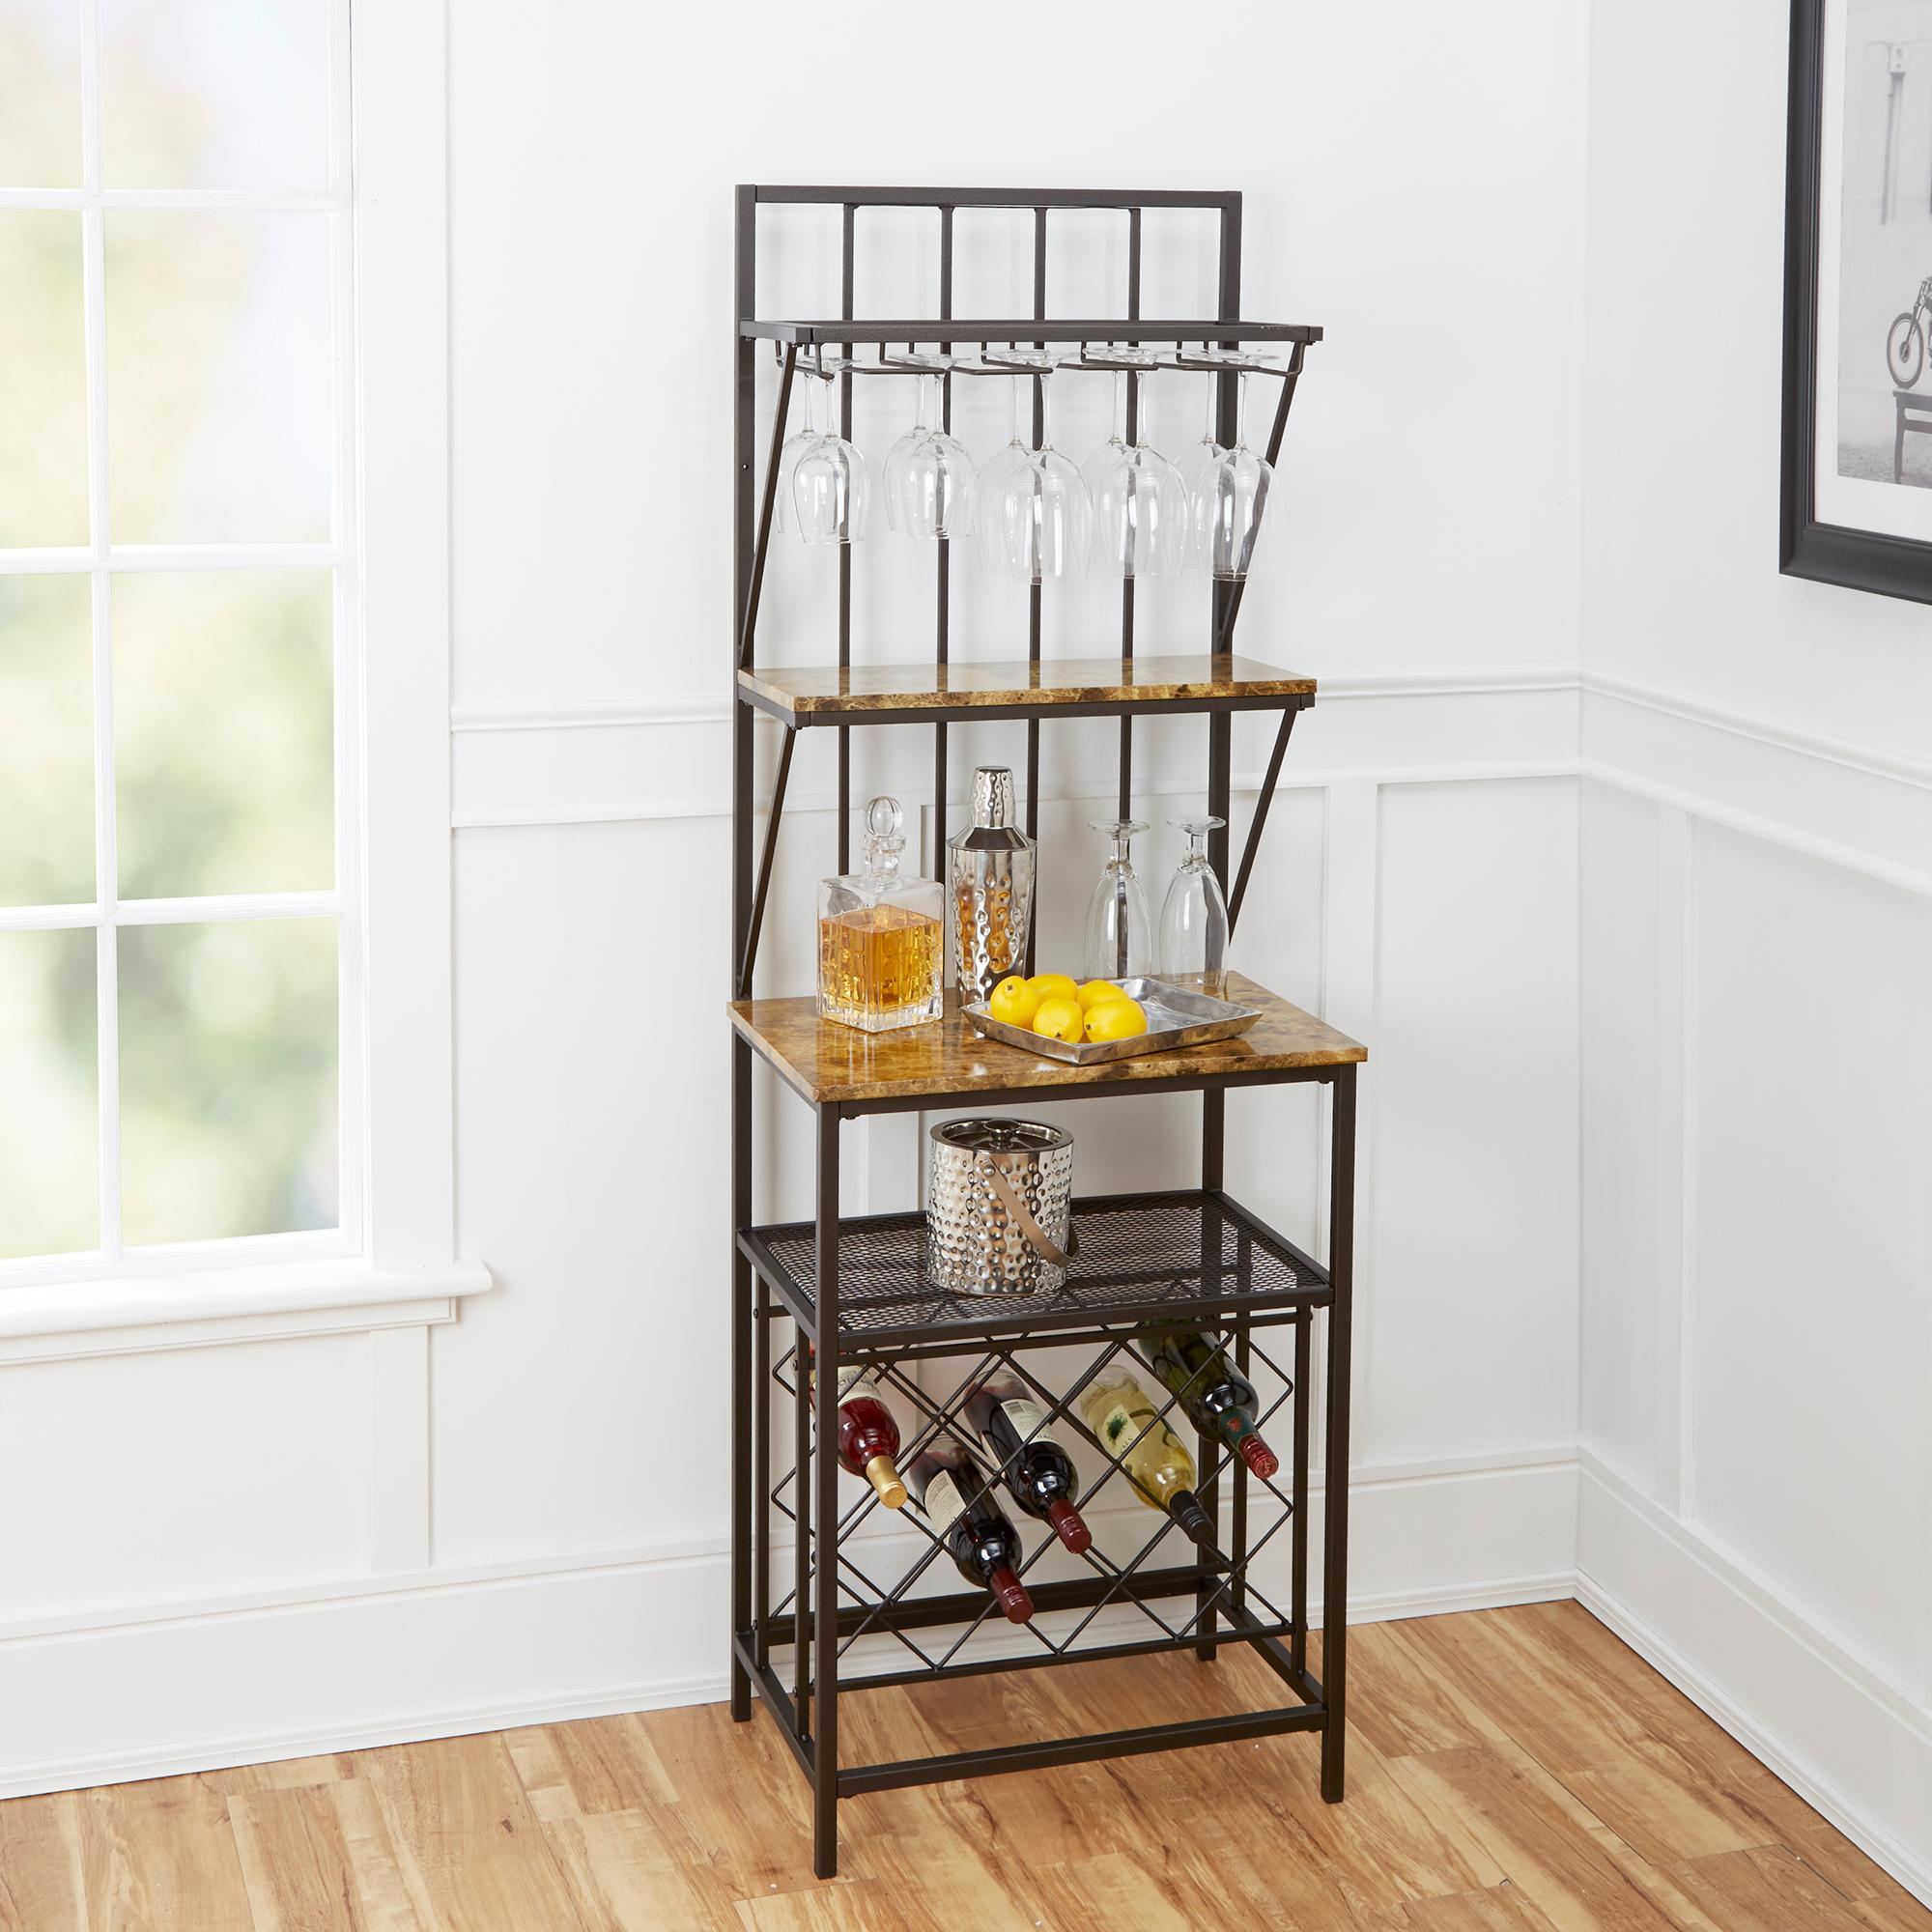 Faux Marble Shelf Baker's Rack with Wine Bottle Storage